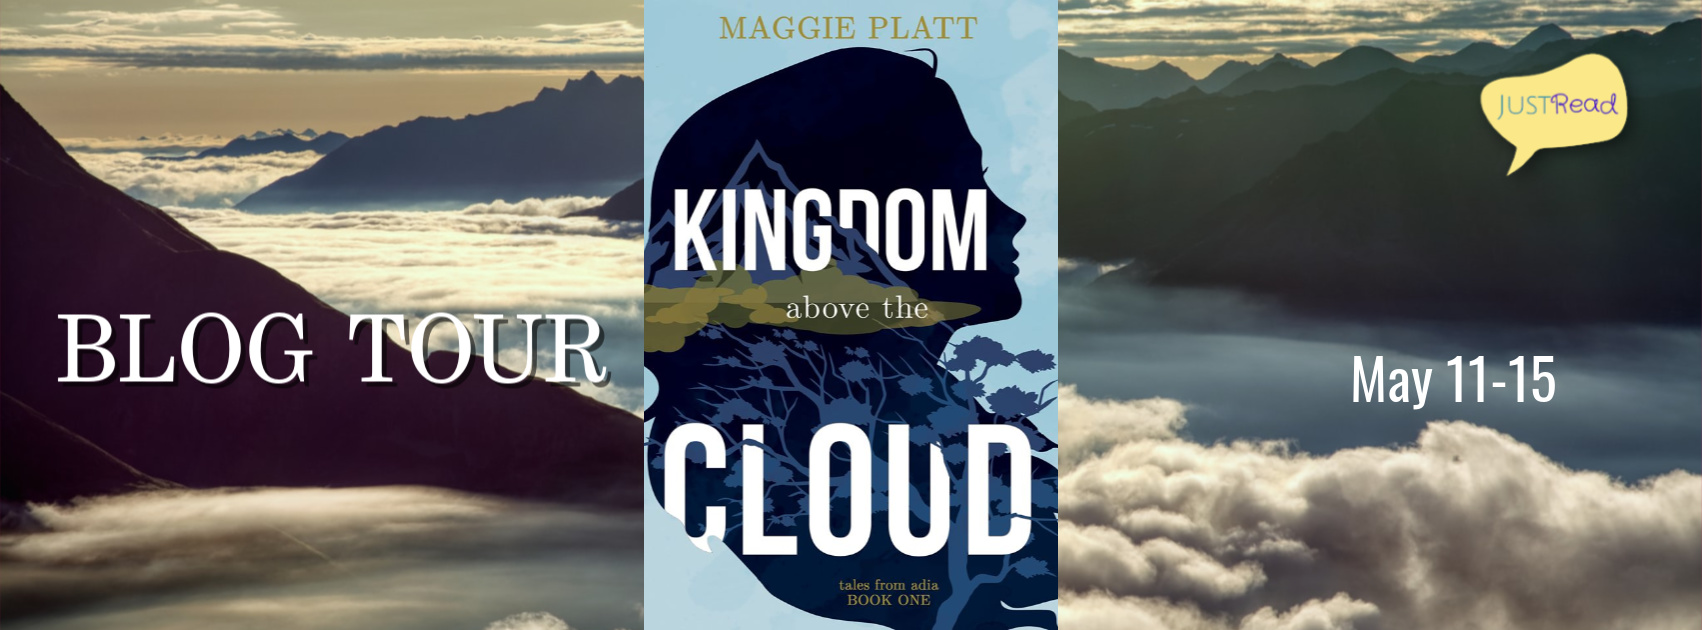 Welcome to the Kingdom Above the Cloud Blog Tour & Giveaway!